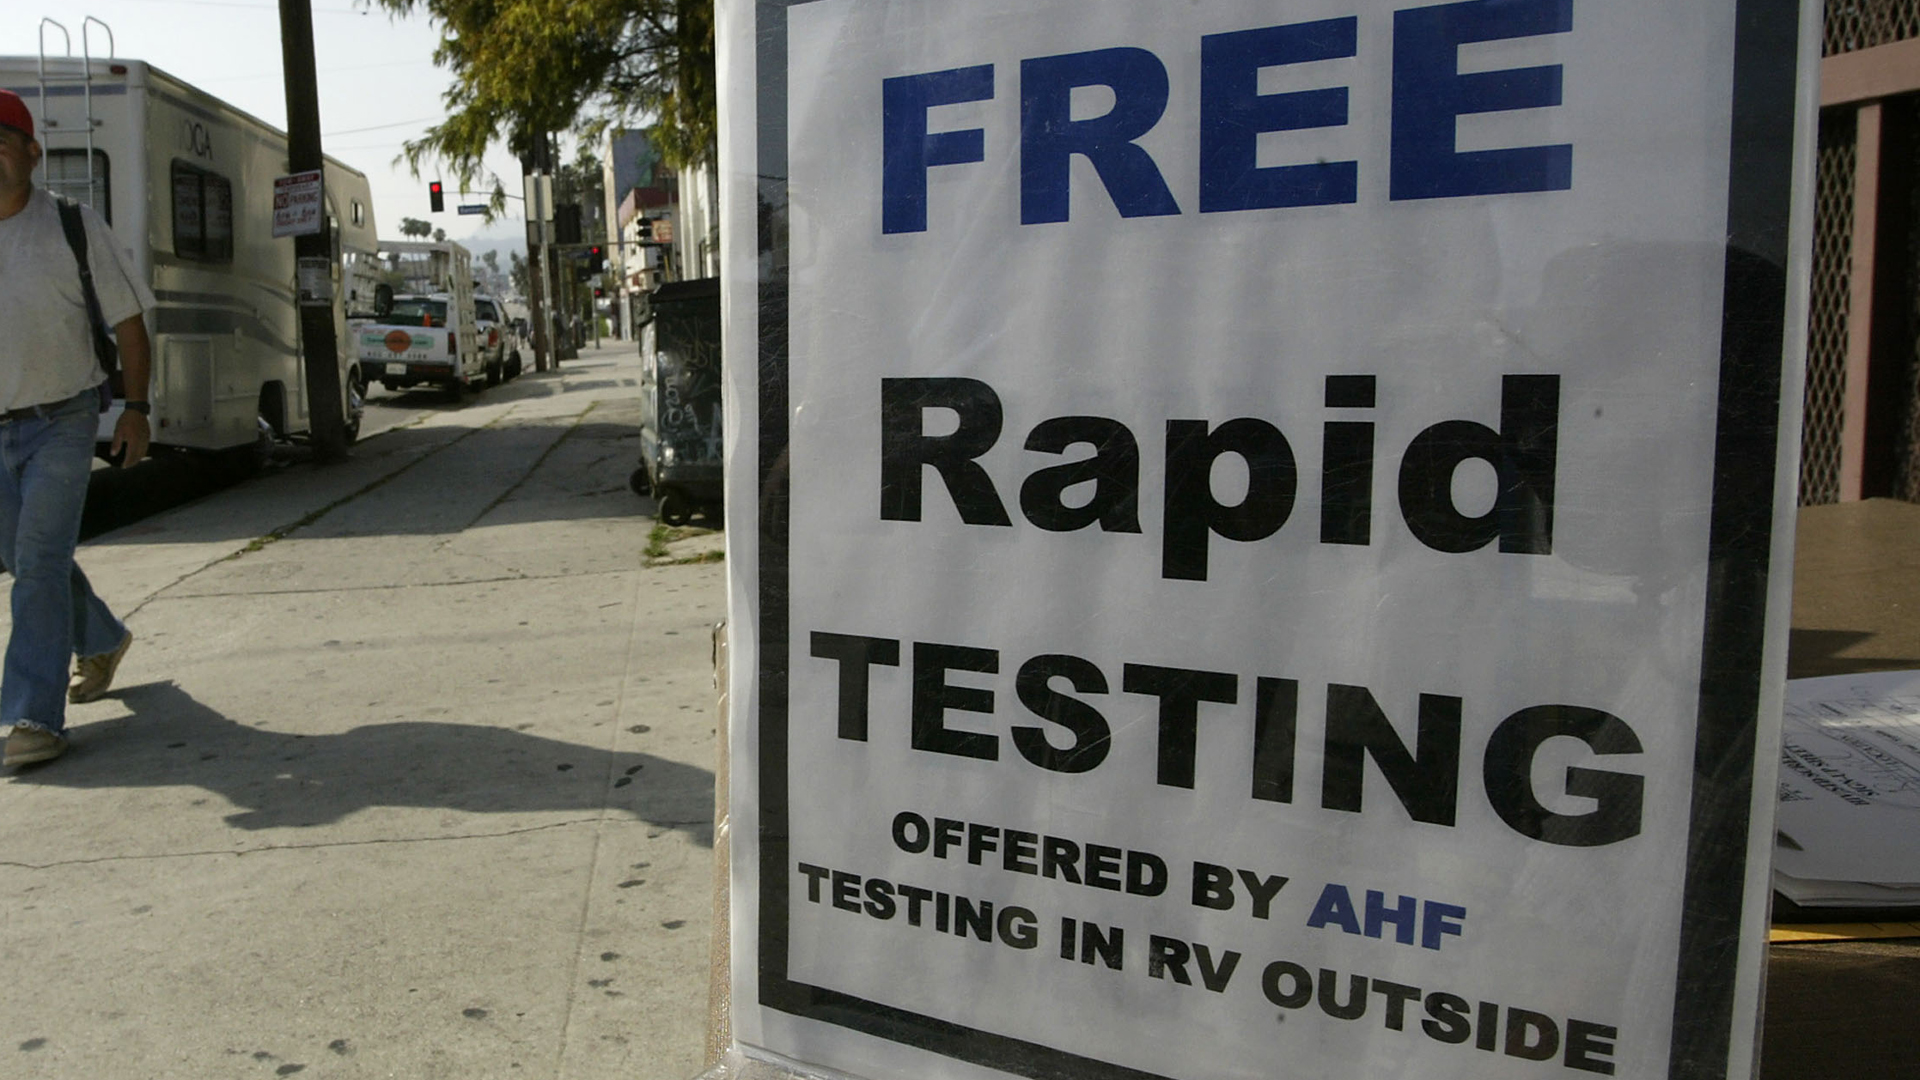 A motorhome converted into a mobile HIV screening lab by the AIDS Healthcare Foundation (AHF) is parked on a busy street on its first day of operations on April 28, 2004 in Los Angeles. (Credit: David McNew/Getty Images)